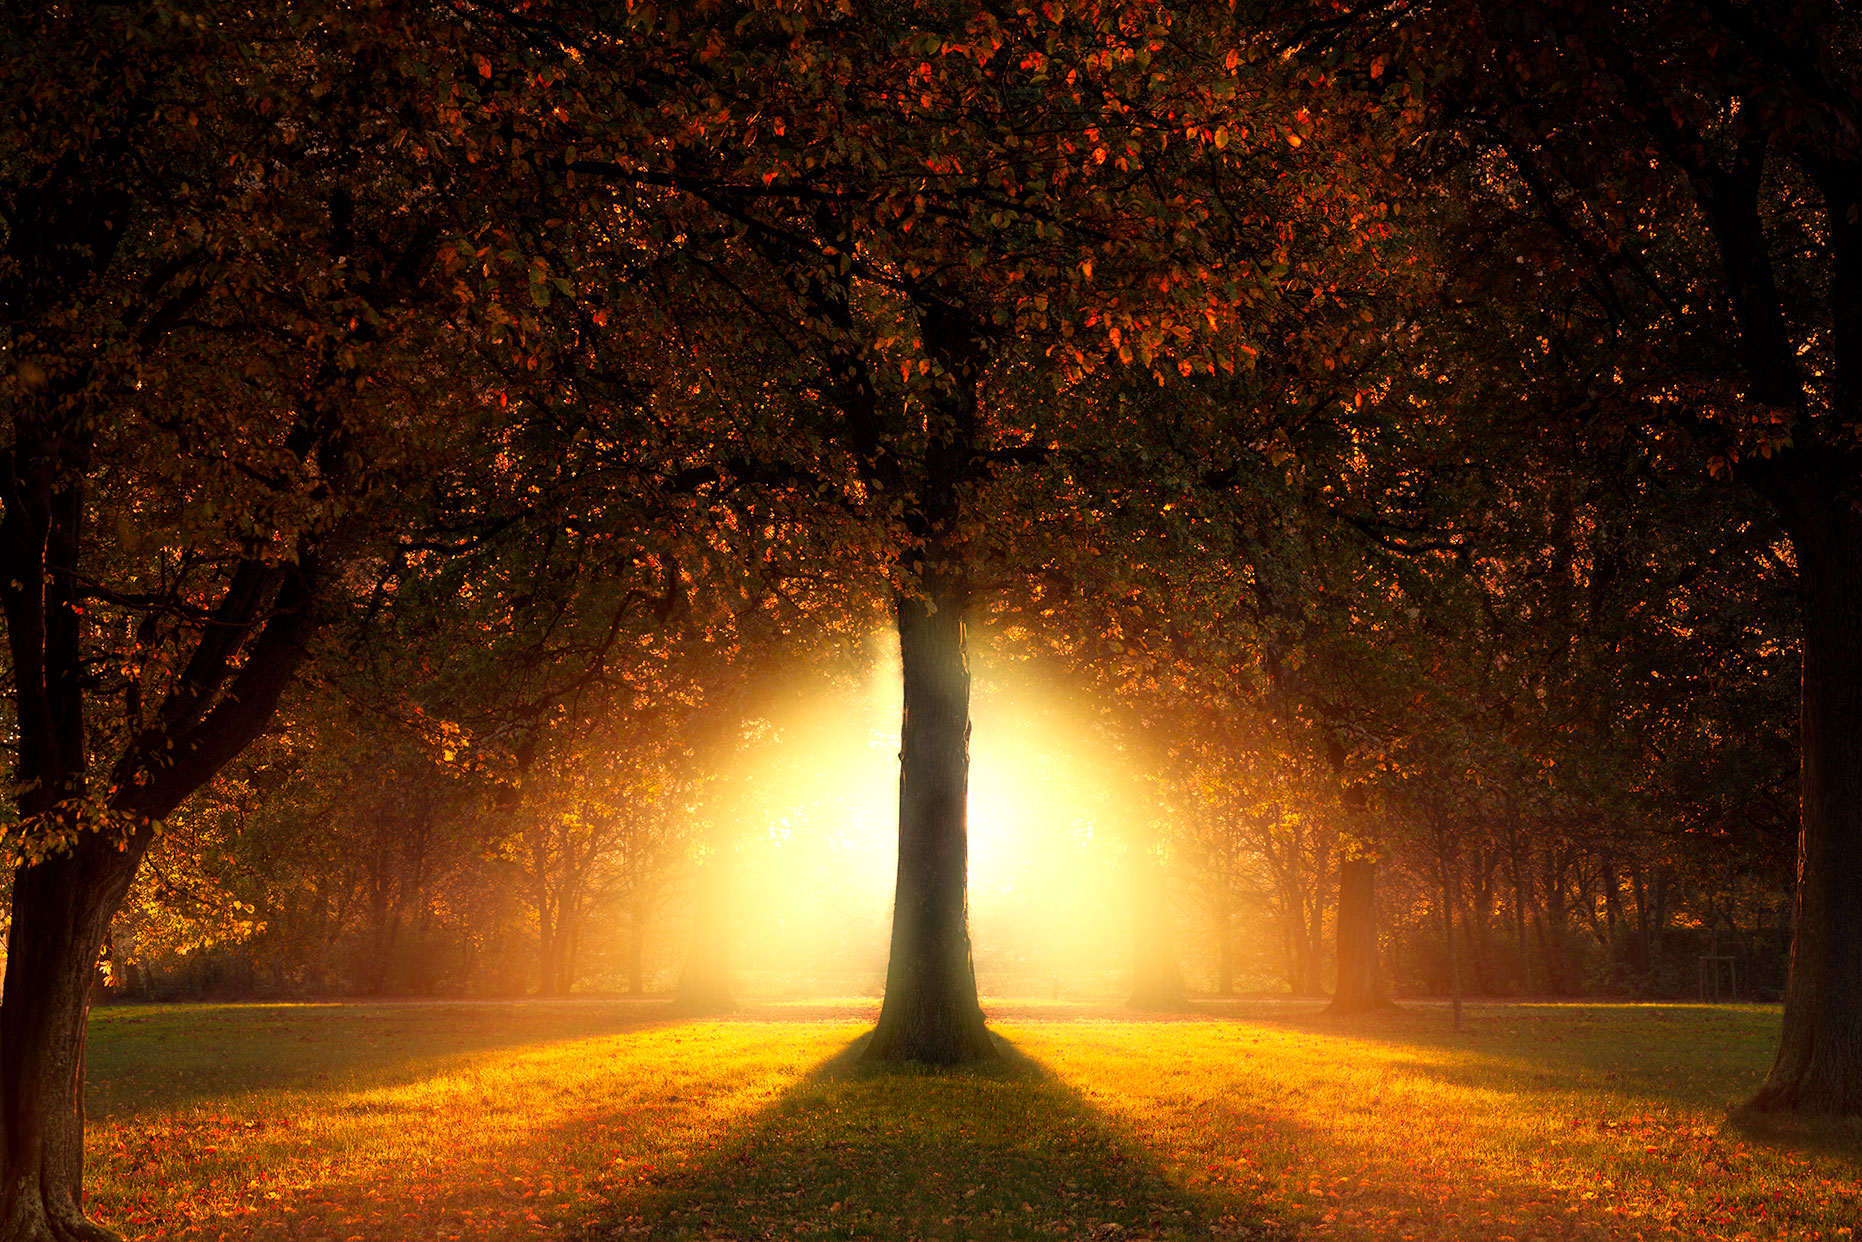 Garden of Eden | Lonely tree photography in sunset